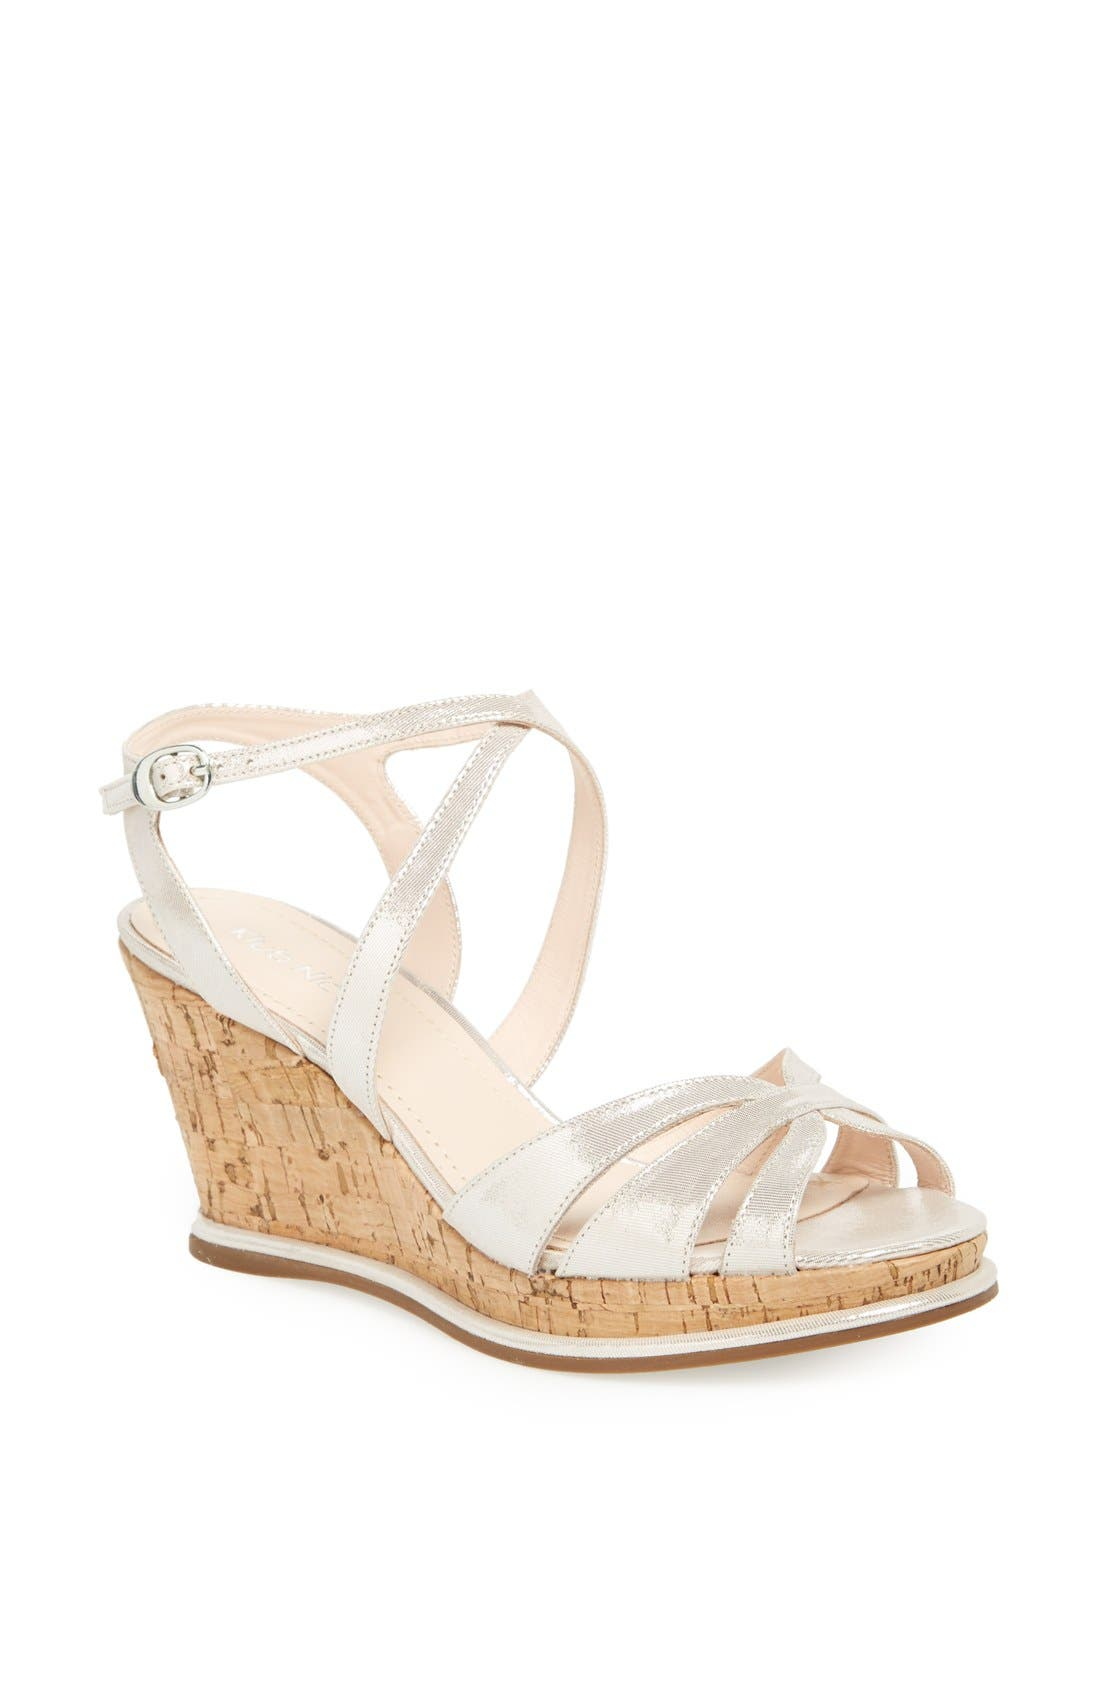 Alternate Image 1 Selected - Klub Nico 'Vava' Wedge Sandal